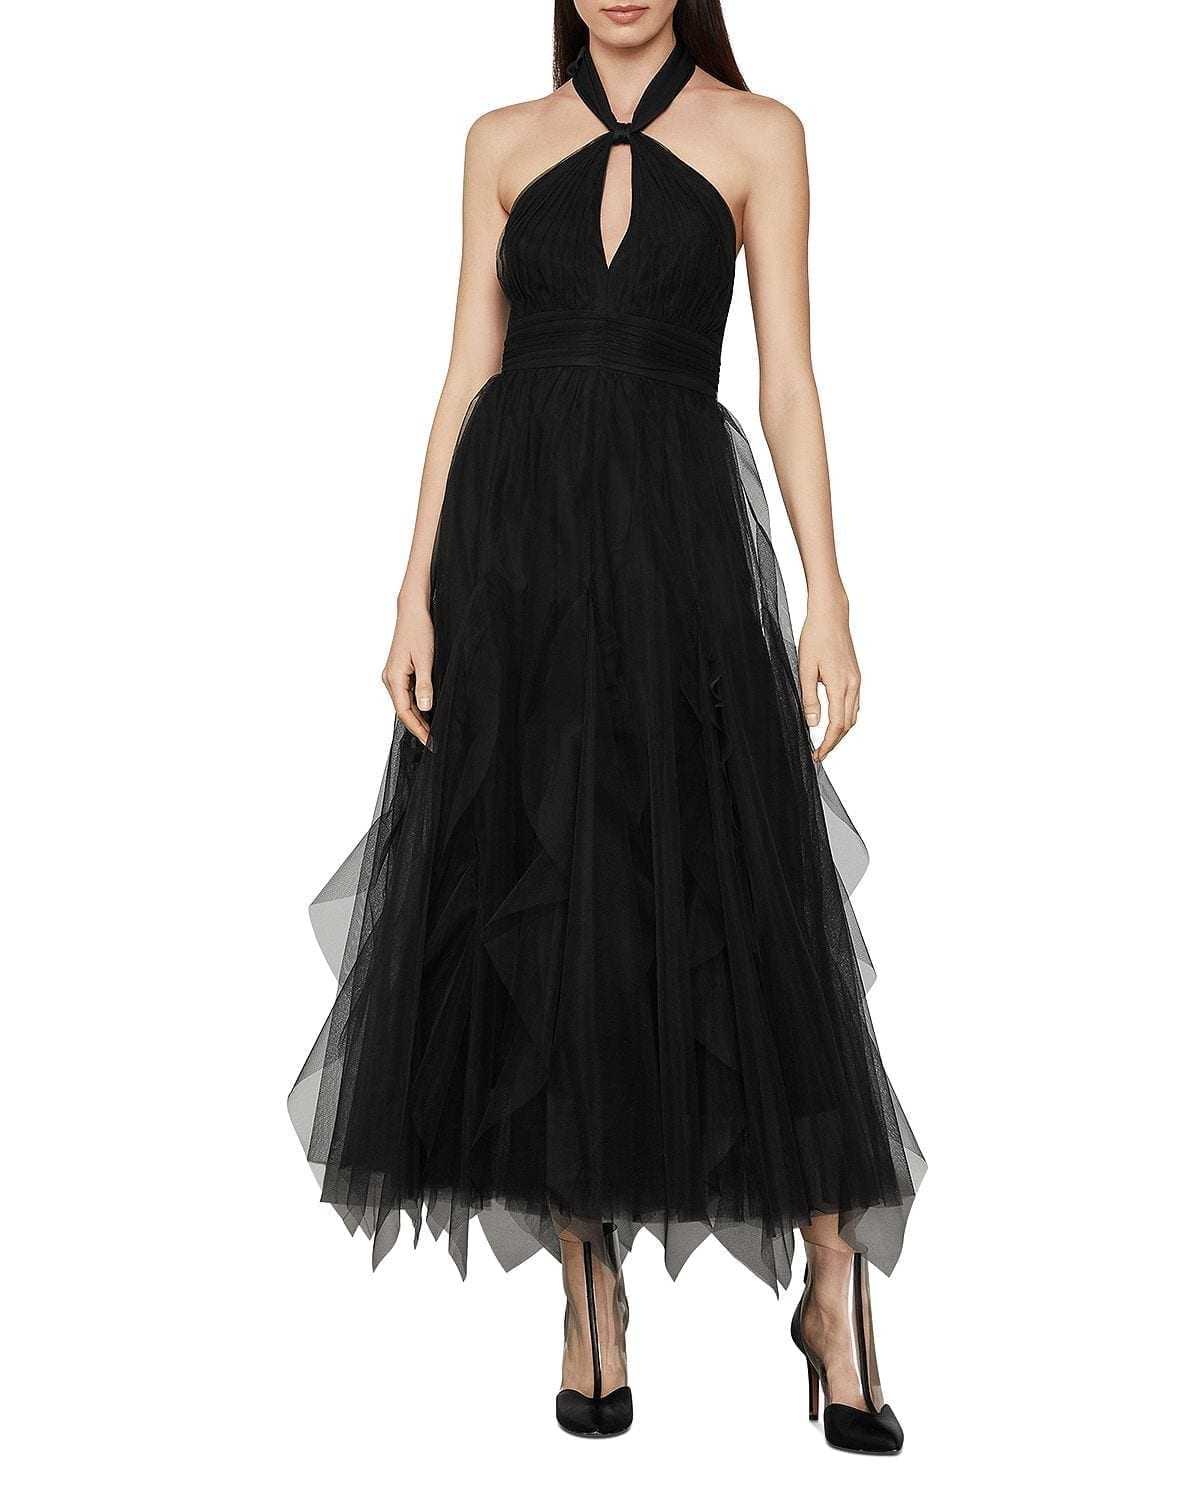 BCBGMAXAZRIA Tulle Halter Dress